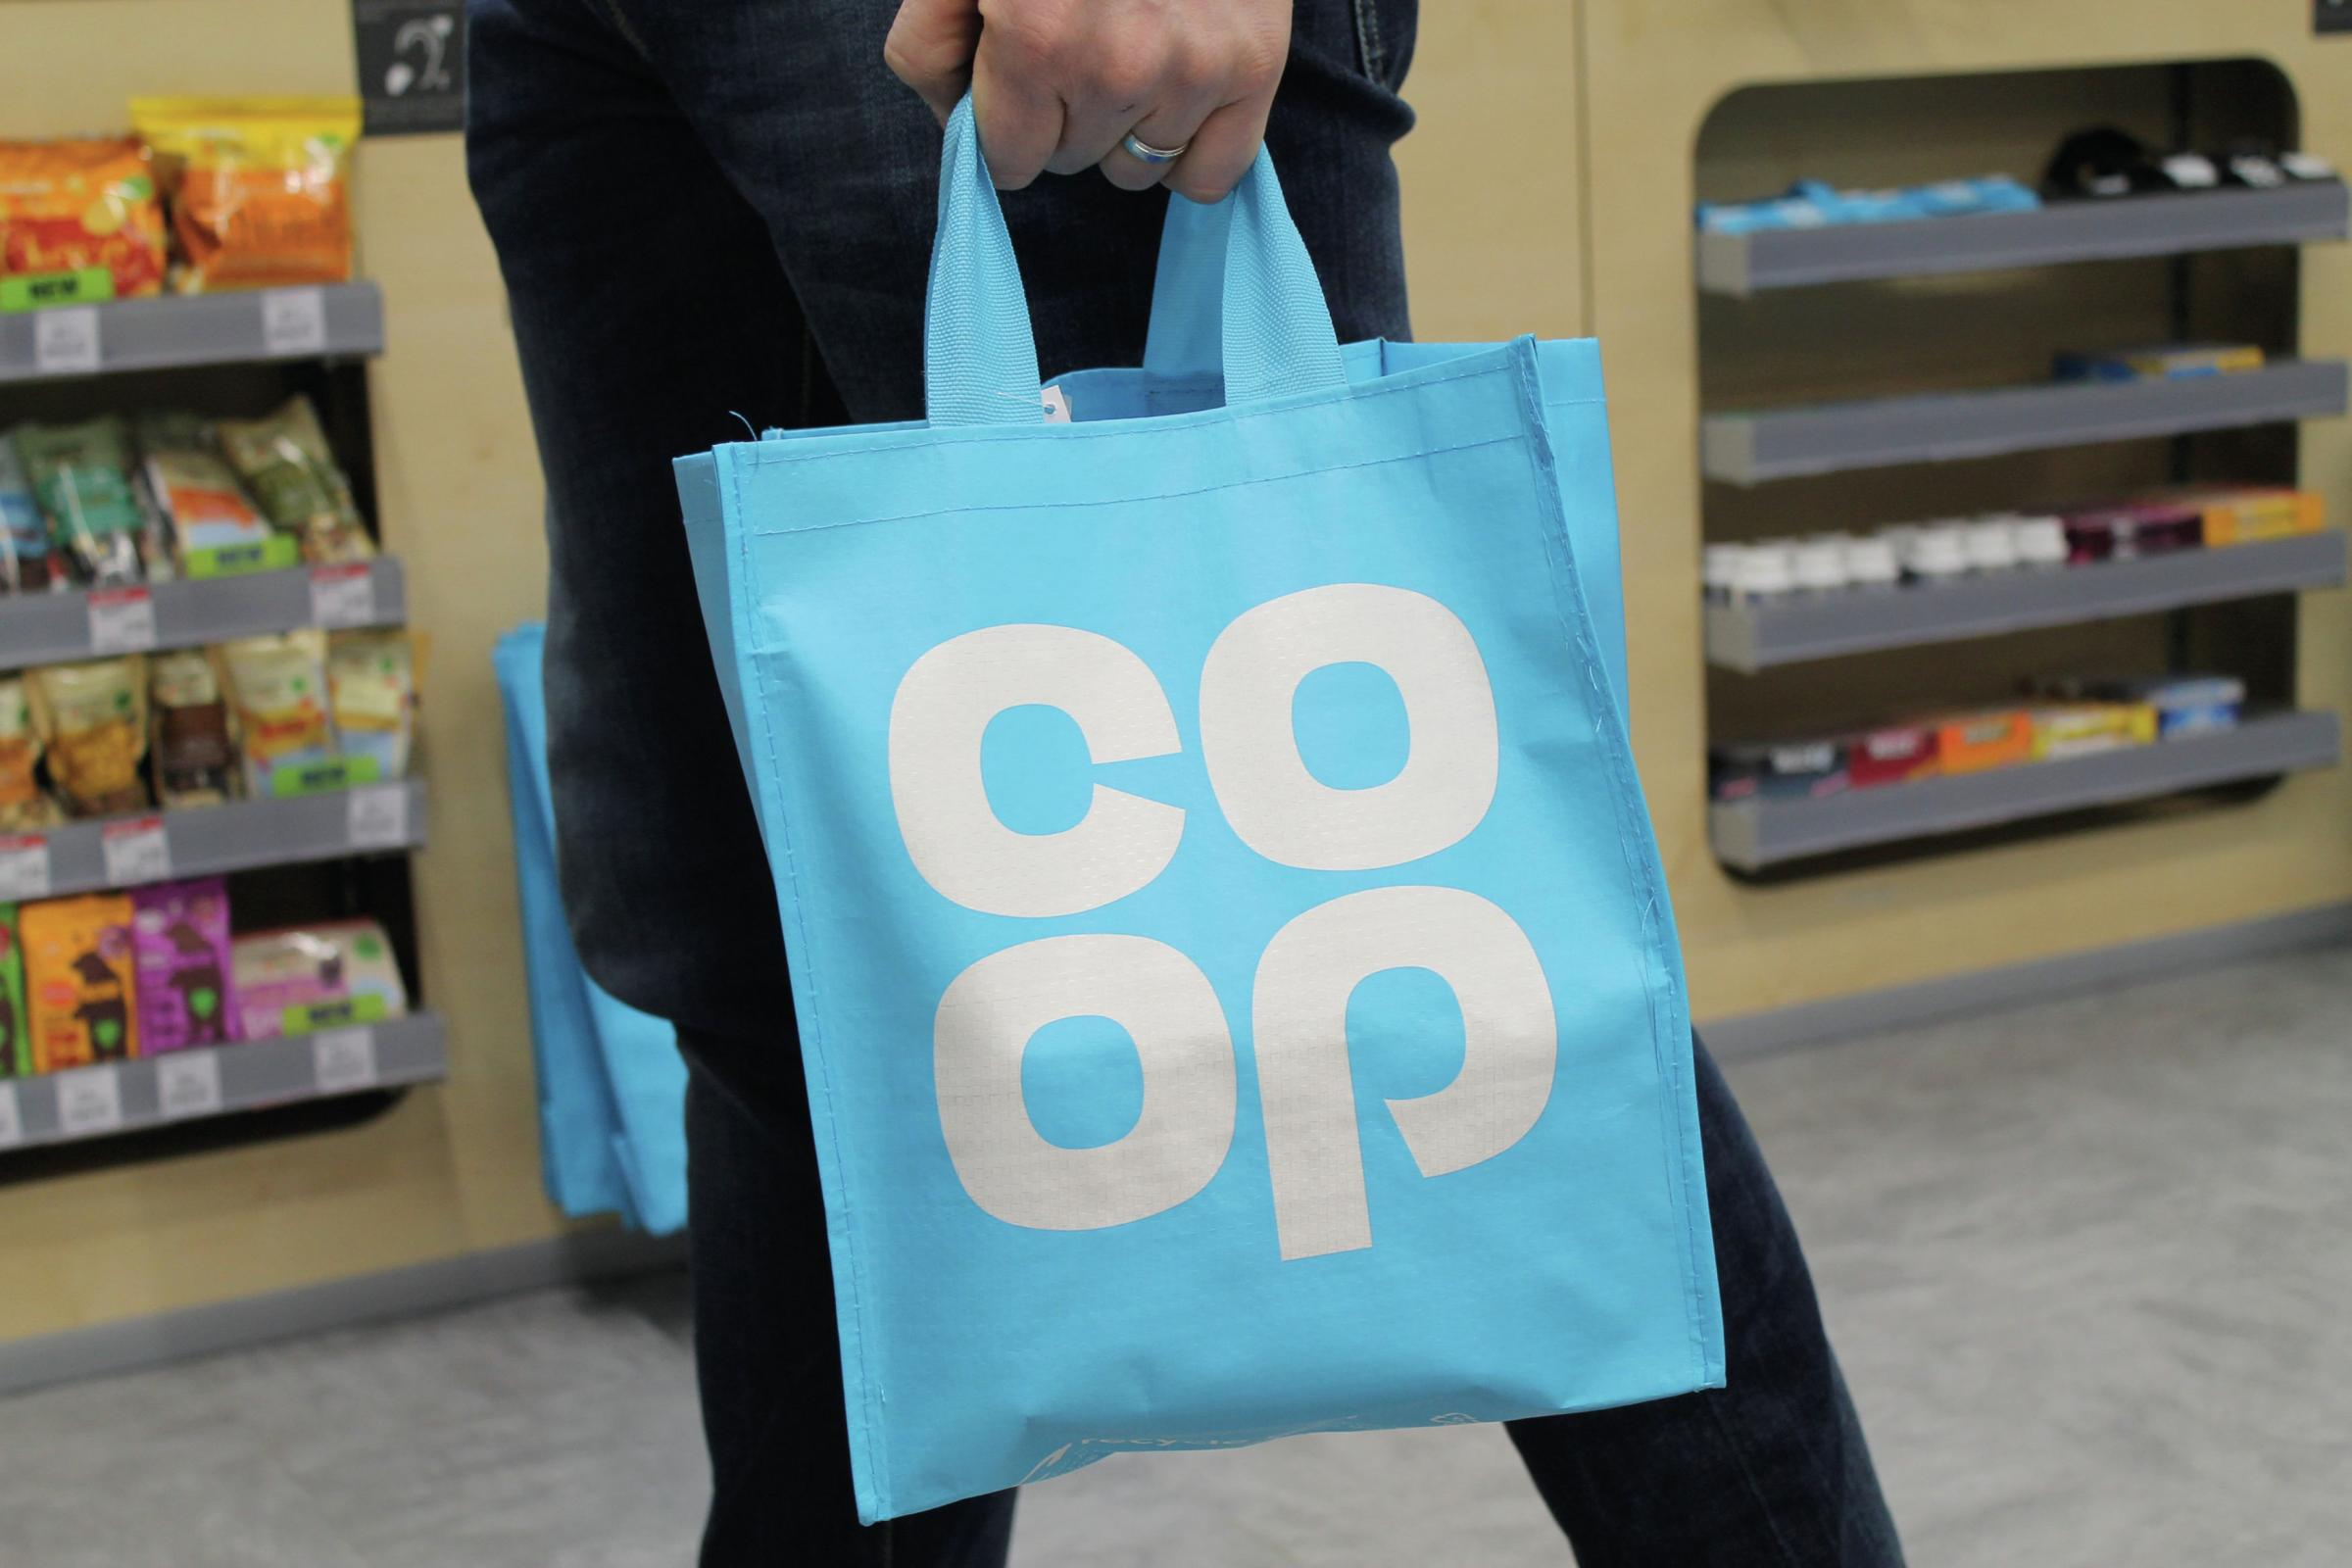 The Co-op is opening a new store in York Picture: Co-op/PA Wire